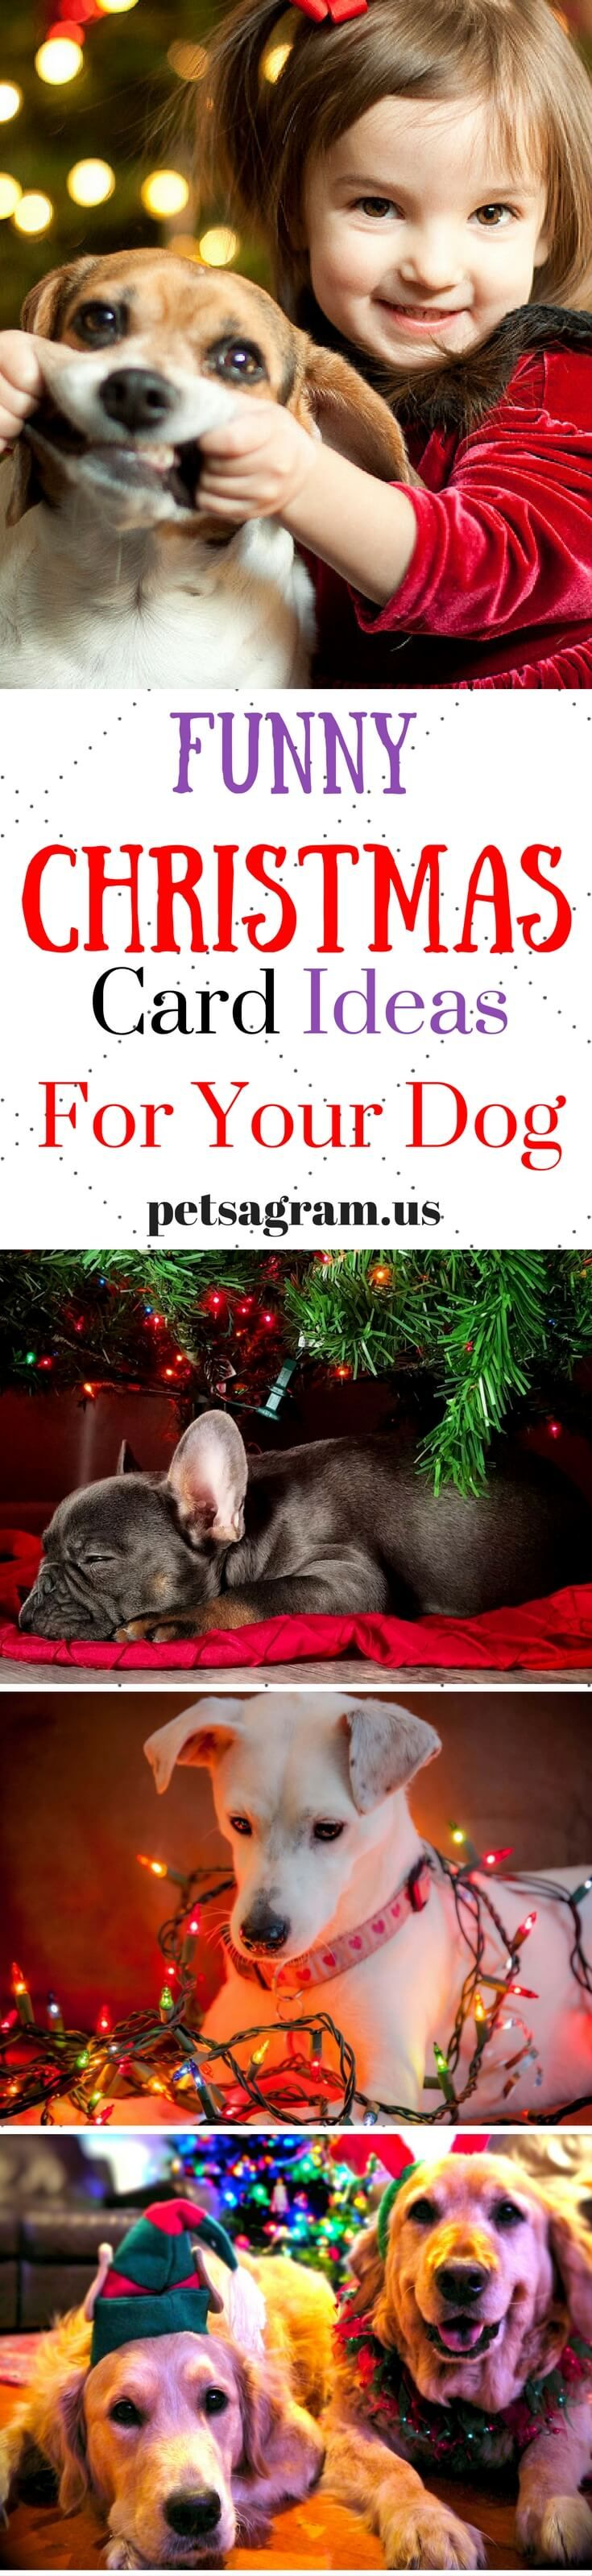 22 best winter dog ideas images on pinterest your pet dog